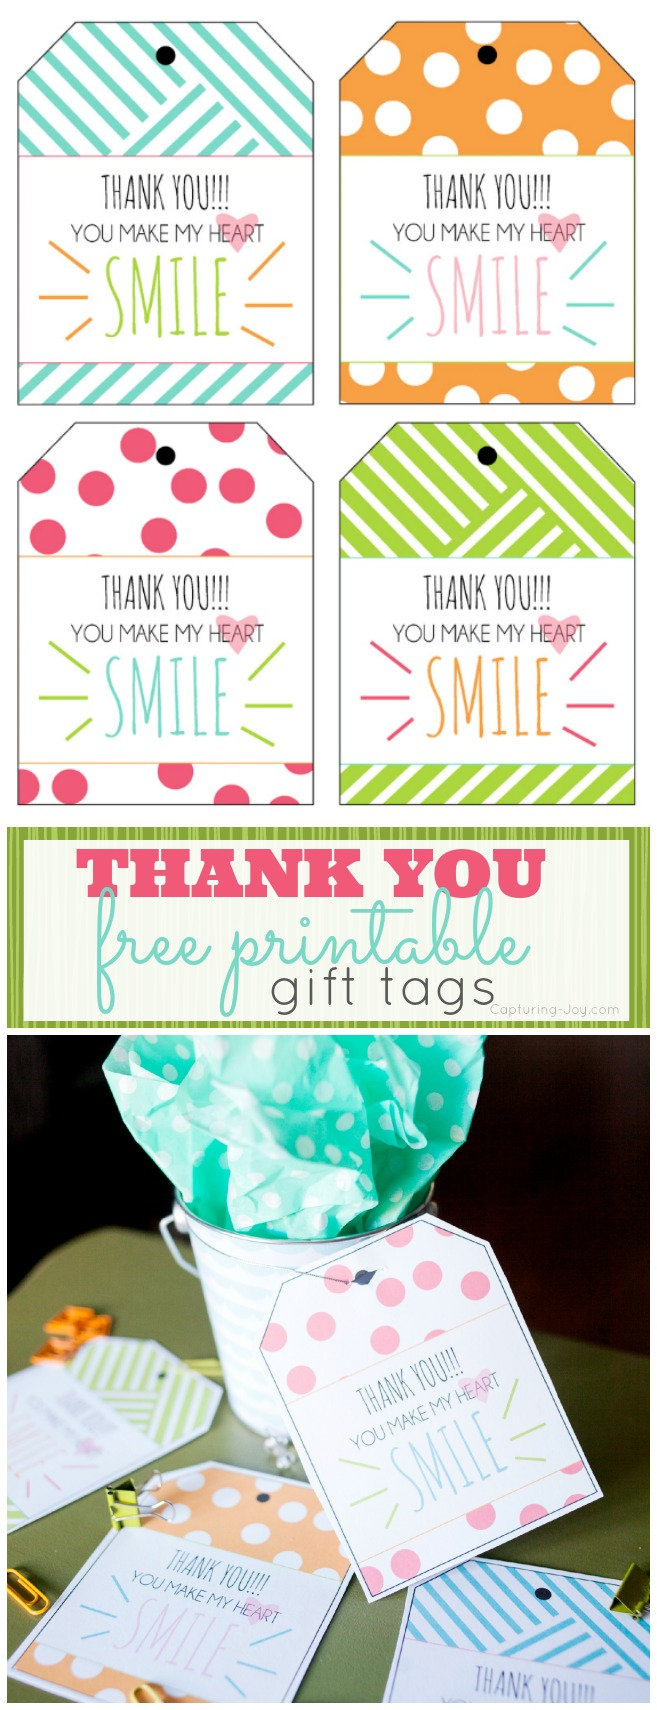 Ridiculous image regarding free printable thank you tags for birthdays